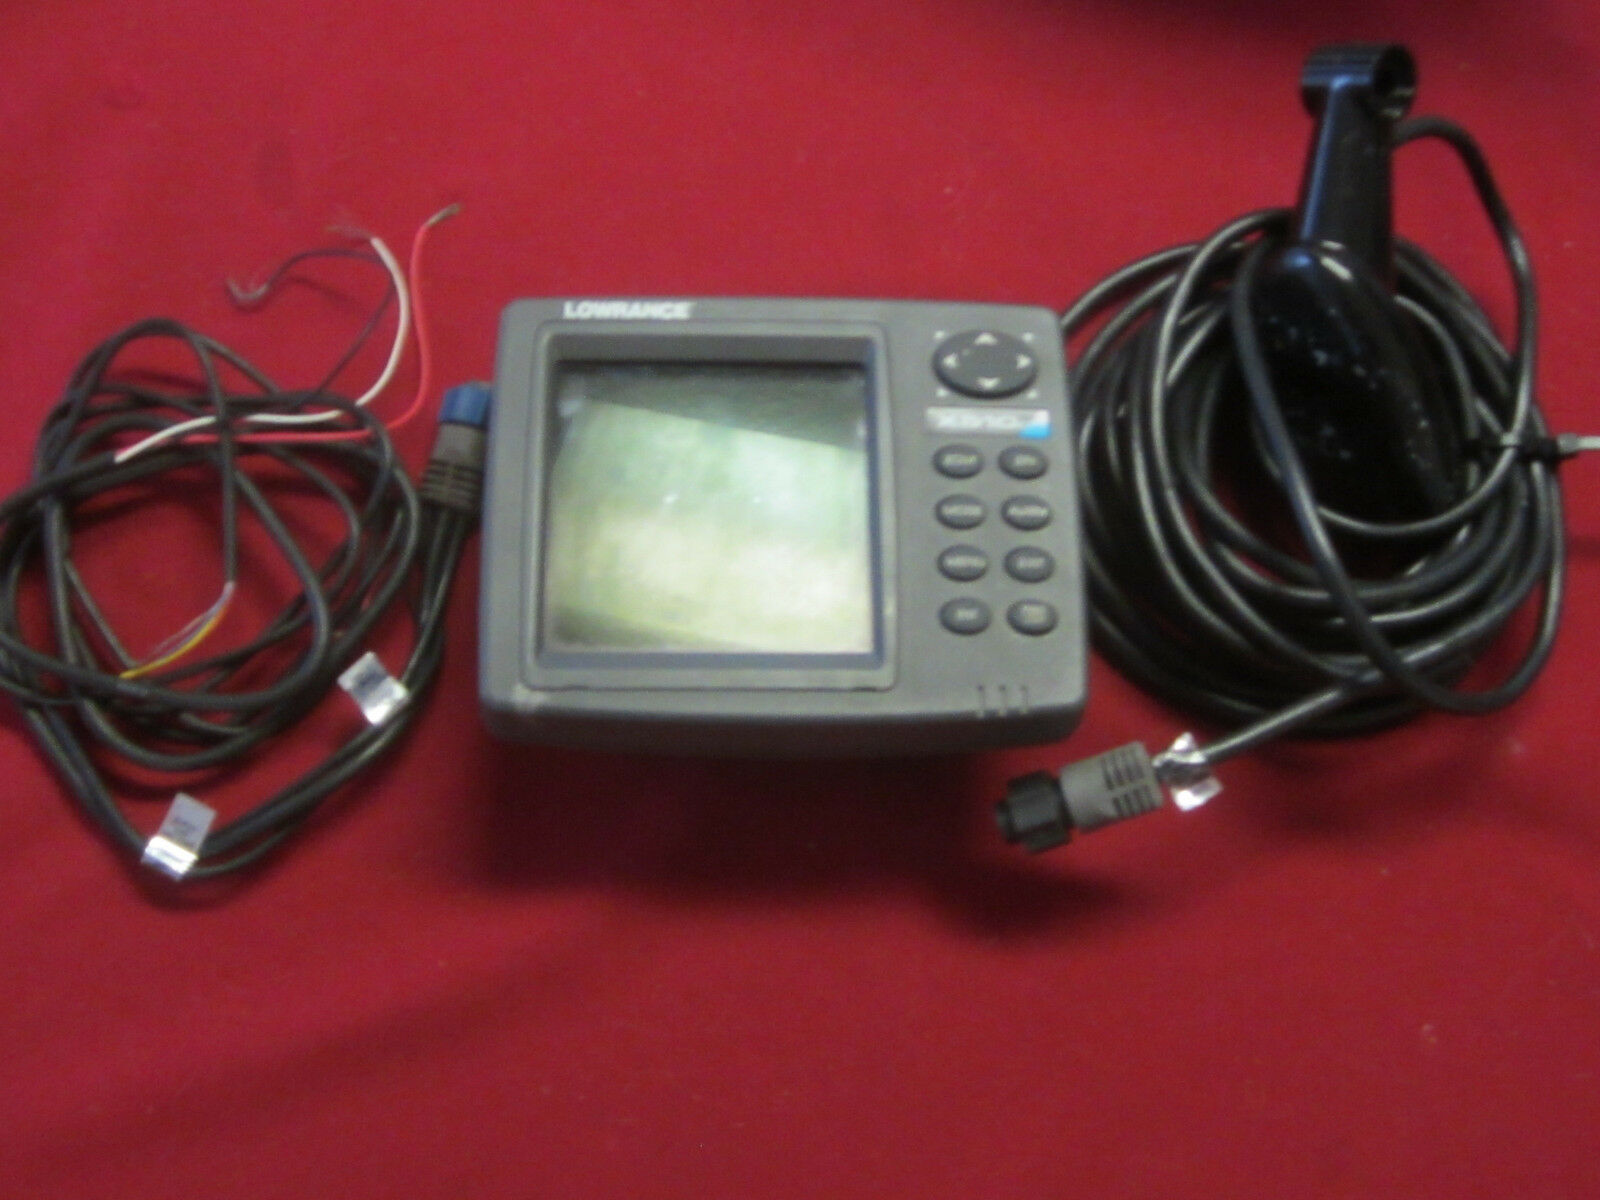 lowrance 510c series depth finder-used transducer & power, Fish Finder